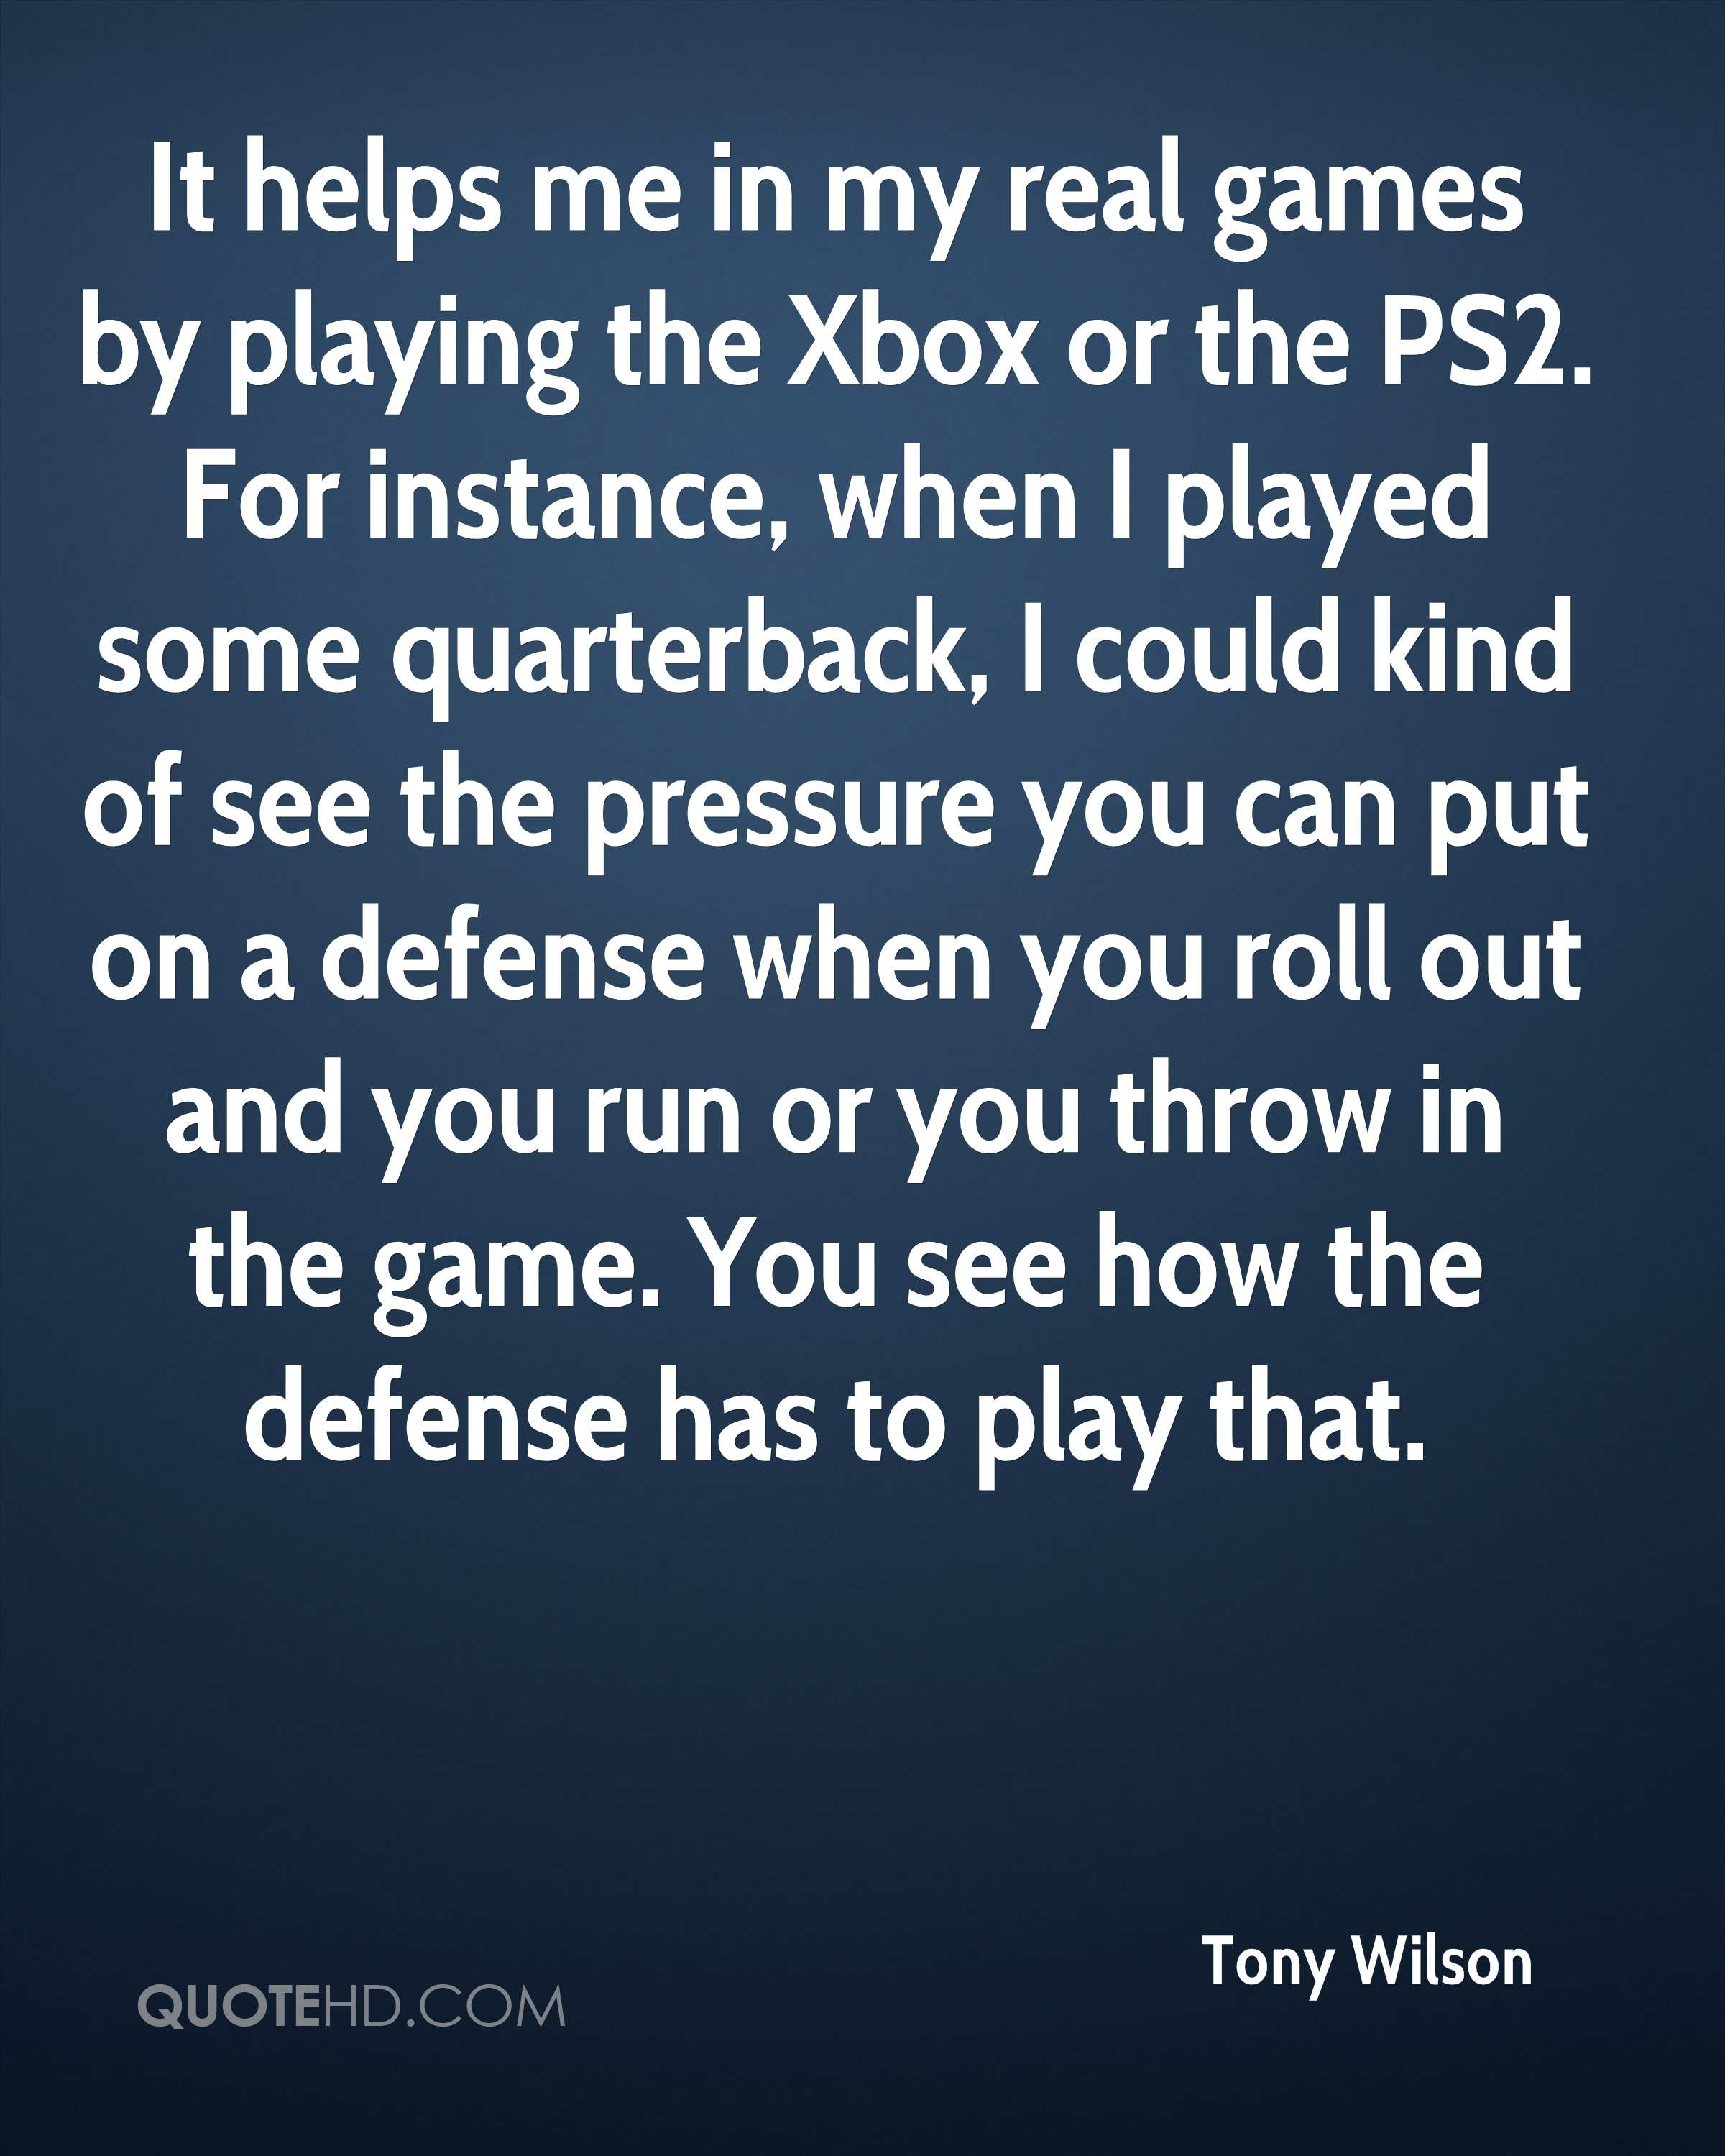 It helps me in my real games by playing the Xbox or the PS2. For instance, when I played some quarterback, I could kind of see the pressure you can put on a defense when you roll out and you run or you throw in the game. You see how the defense has to play that.